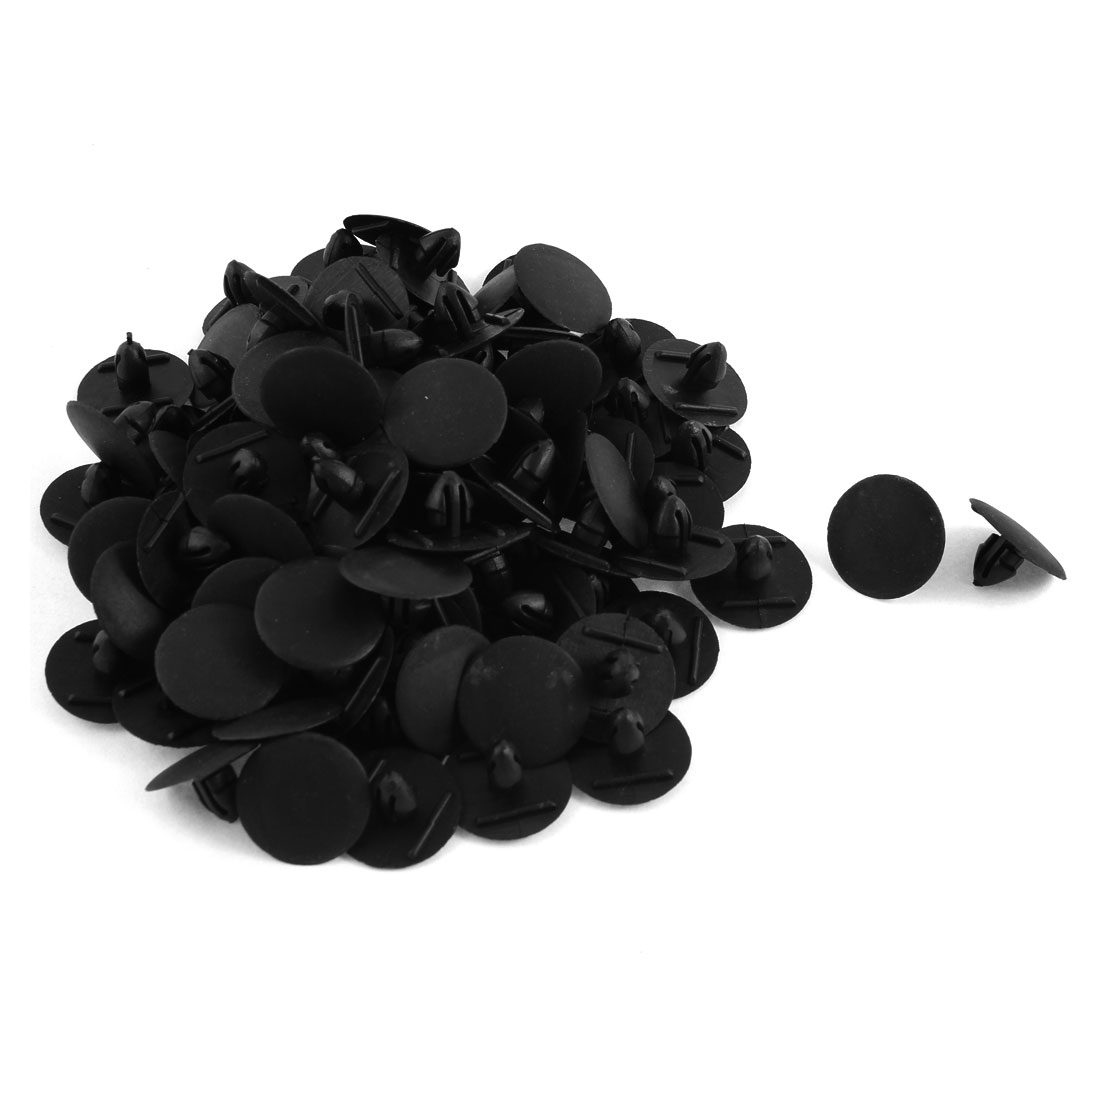 100 Pcs Black Plastic Rivet Trim Fastener Retainer Clips 9mm x 13mm x 24mm